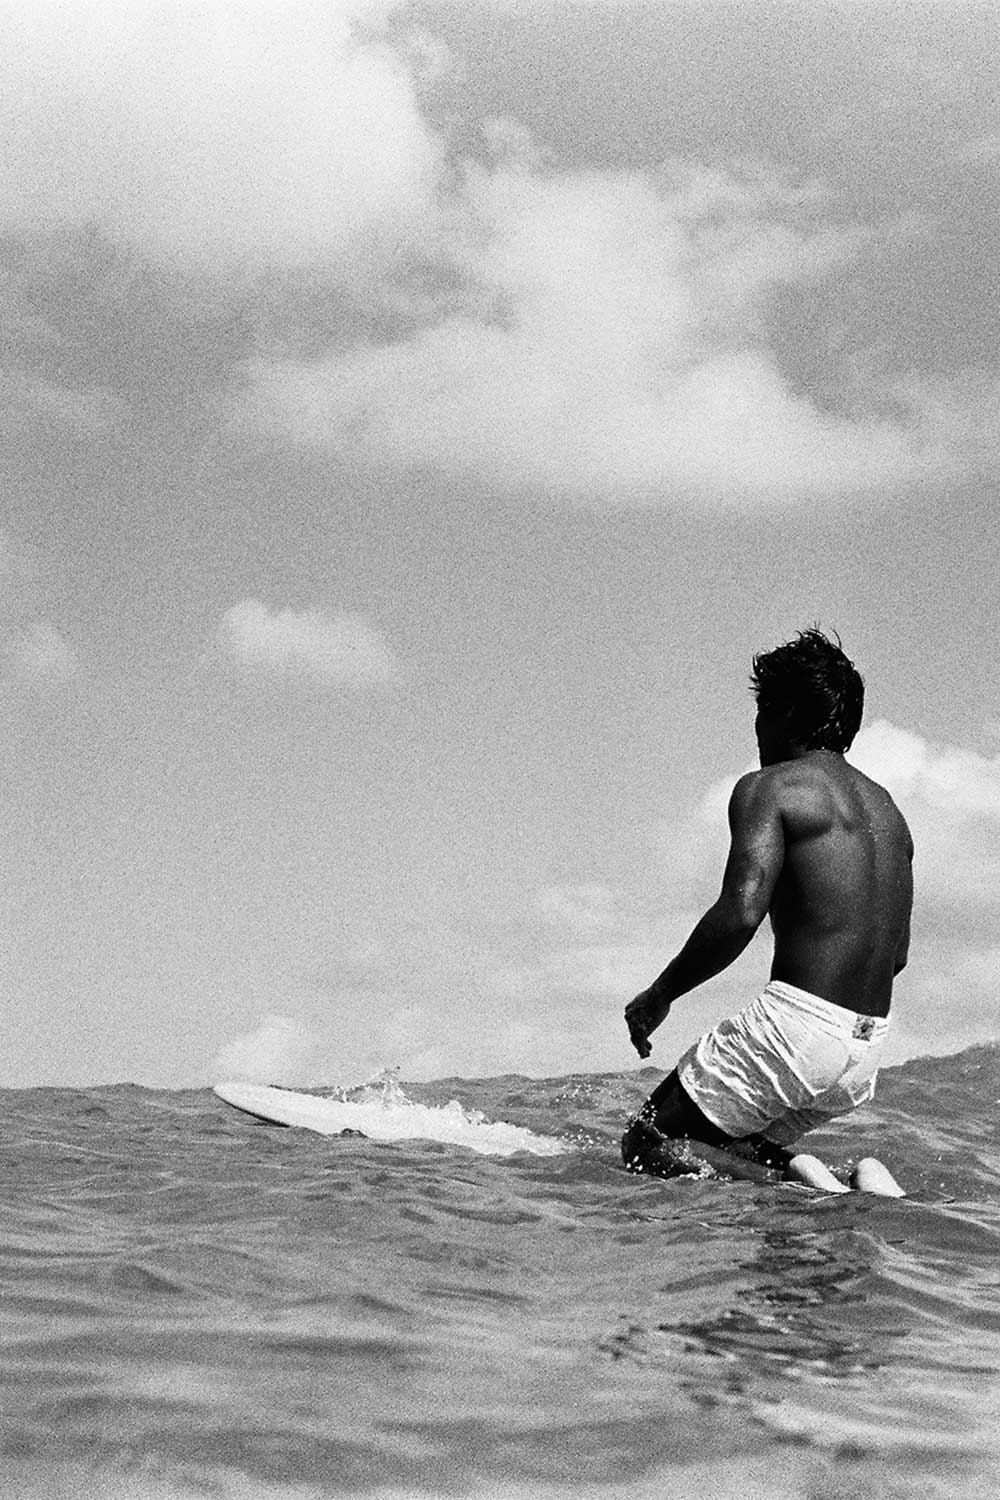 black and white photo of Toots kneeling on surfboard in ocean